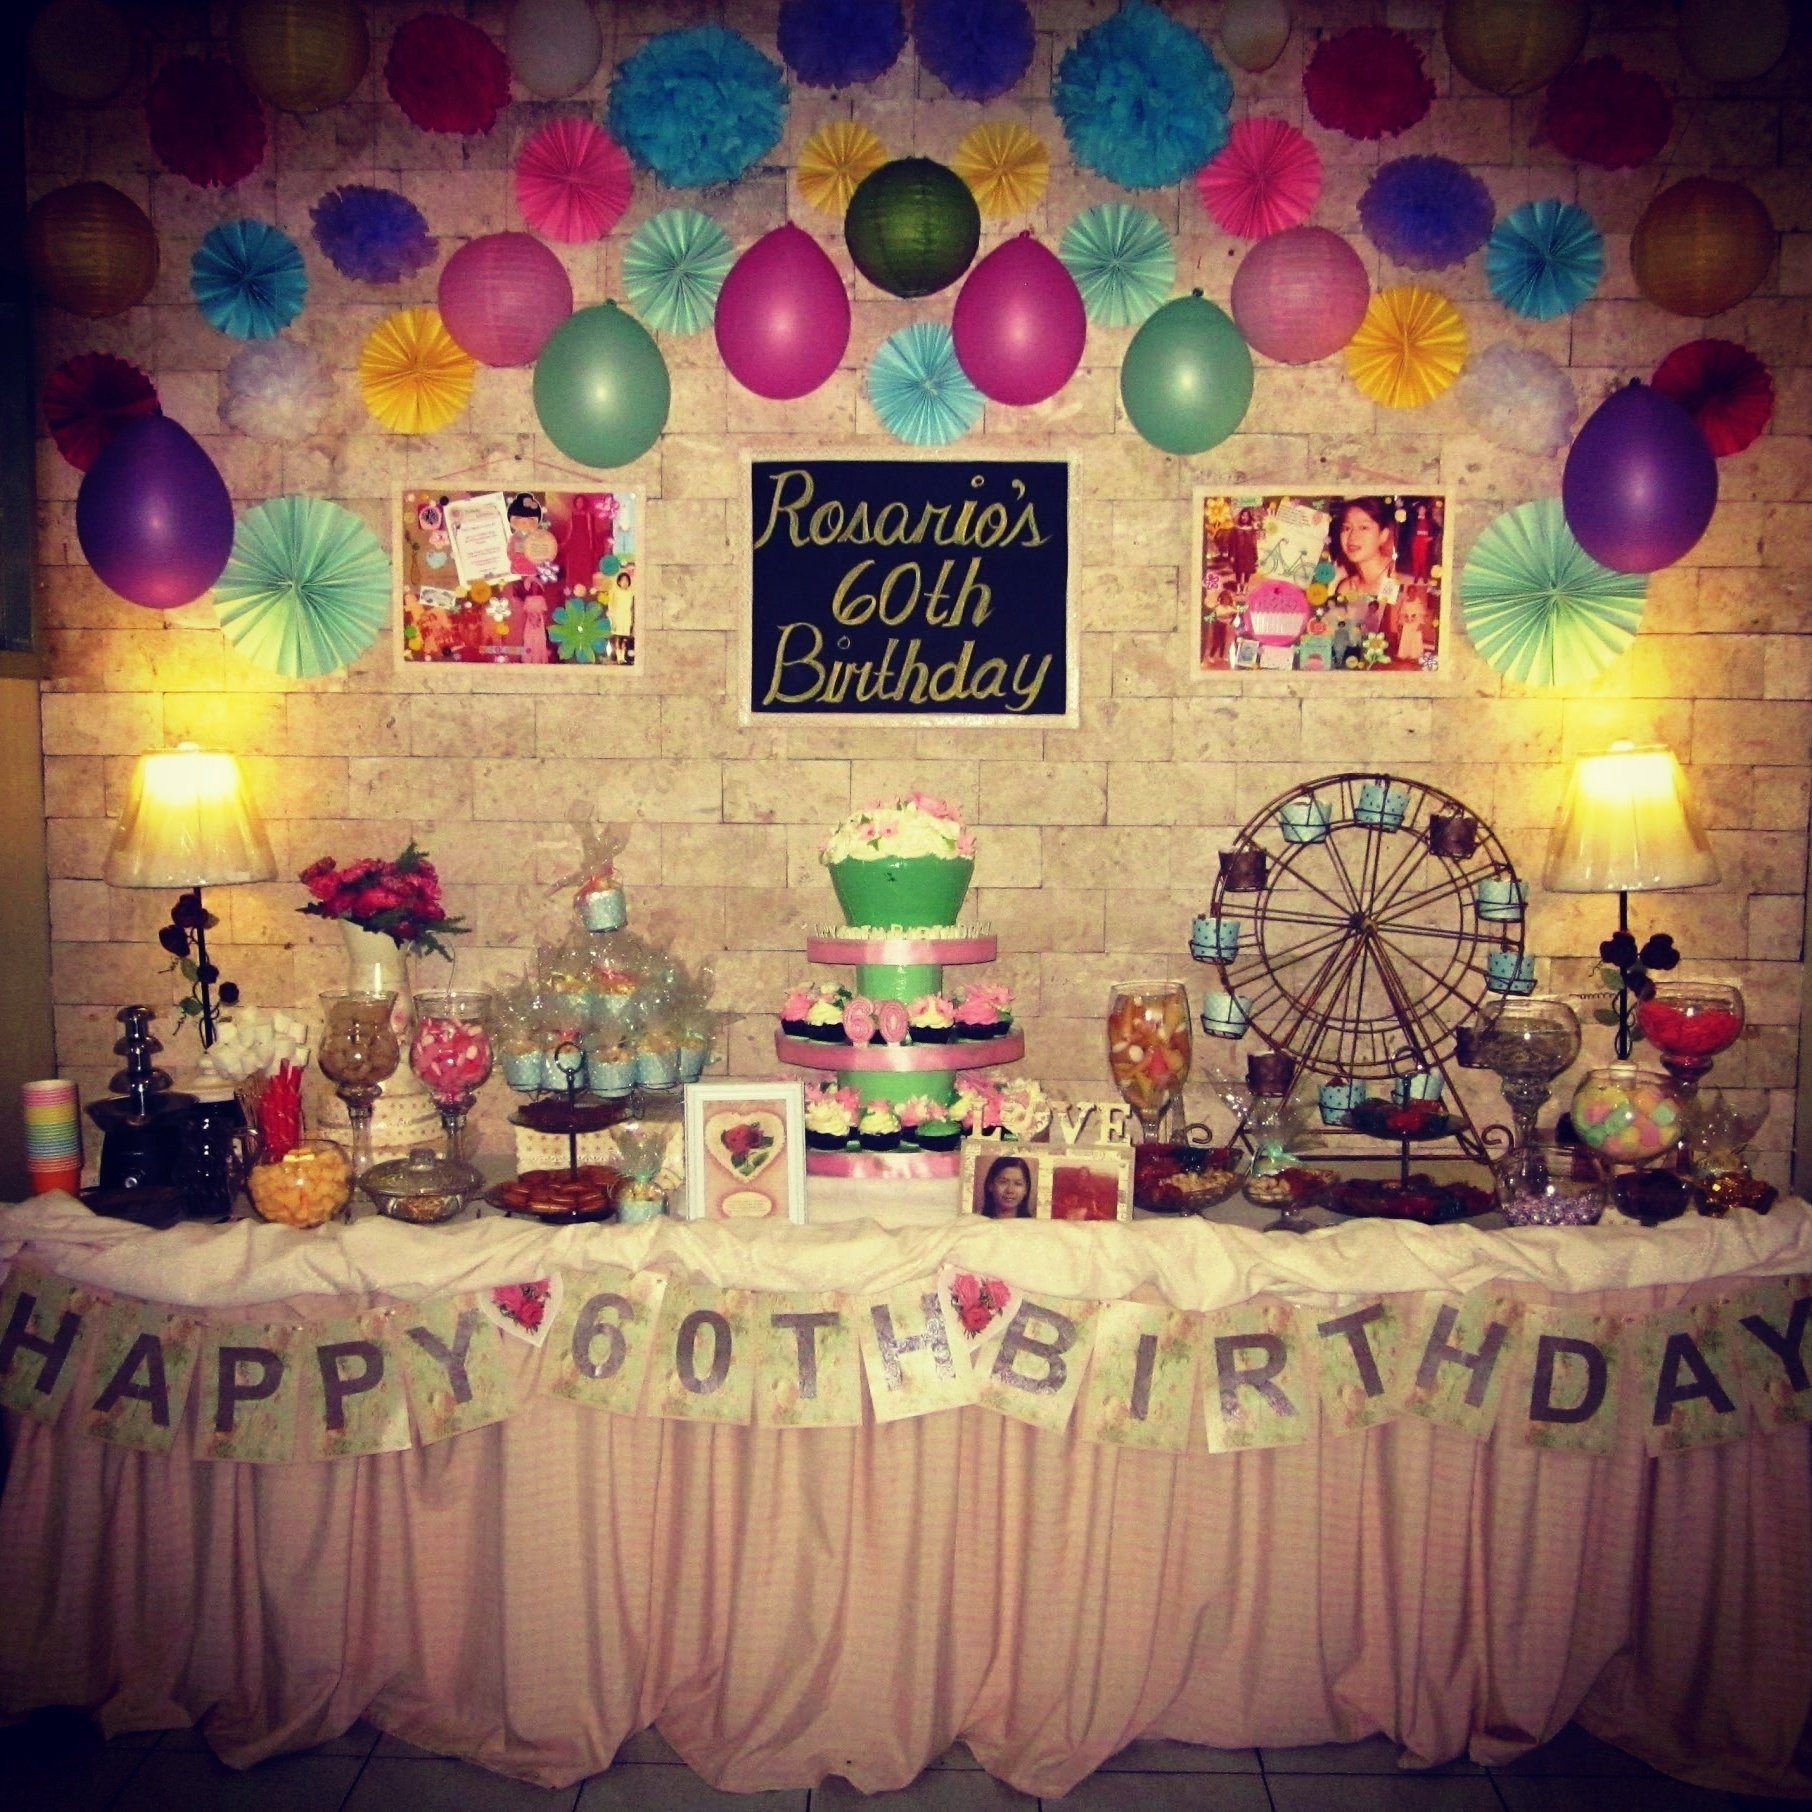 Mother 60Th Birthday Gift Ideas  10 Best Ideas For 60Th Birthday Party For Mom 2019